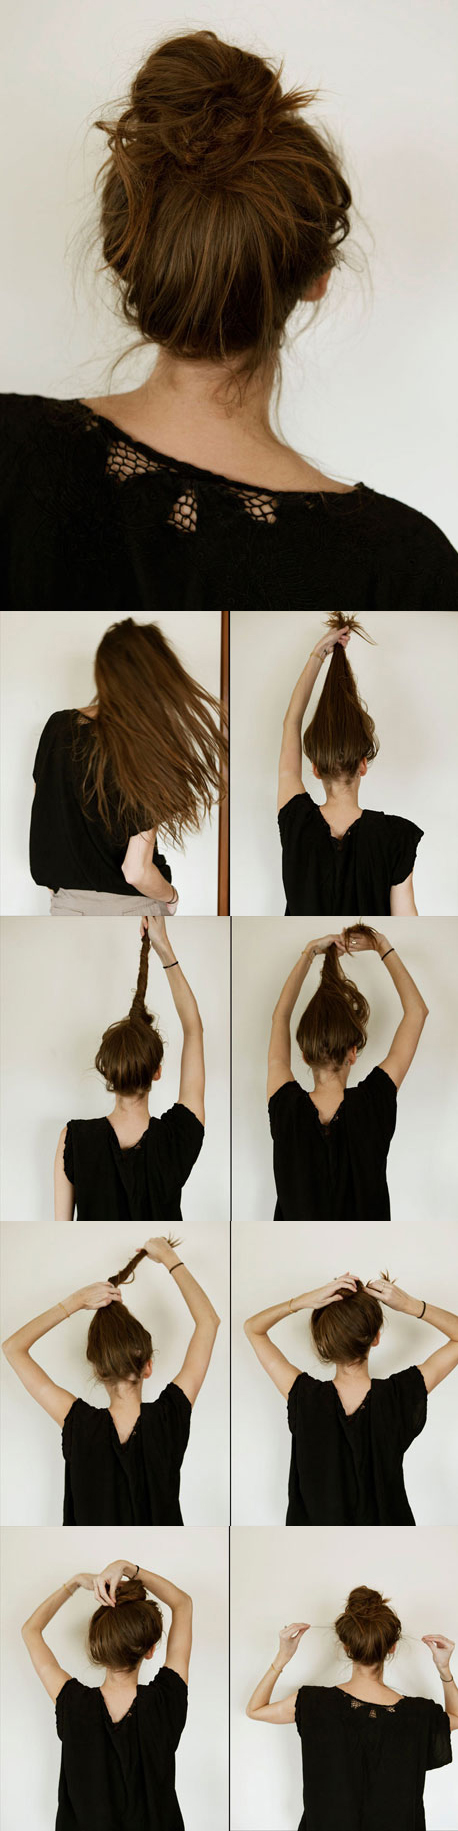 Super 13 Rather Simple Bun Hairstyles Tutorials For 2014 Pretty Designs Hairstyle Inspiration Daily Dogsangcom